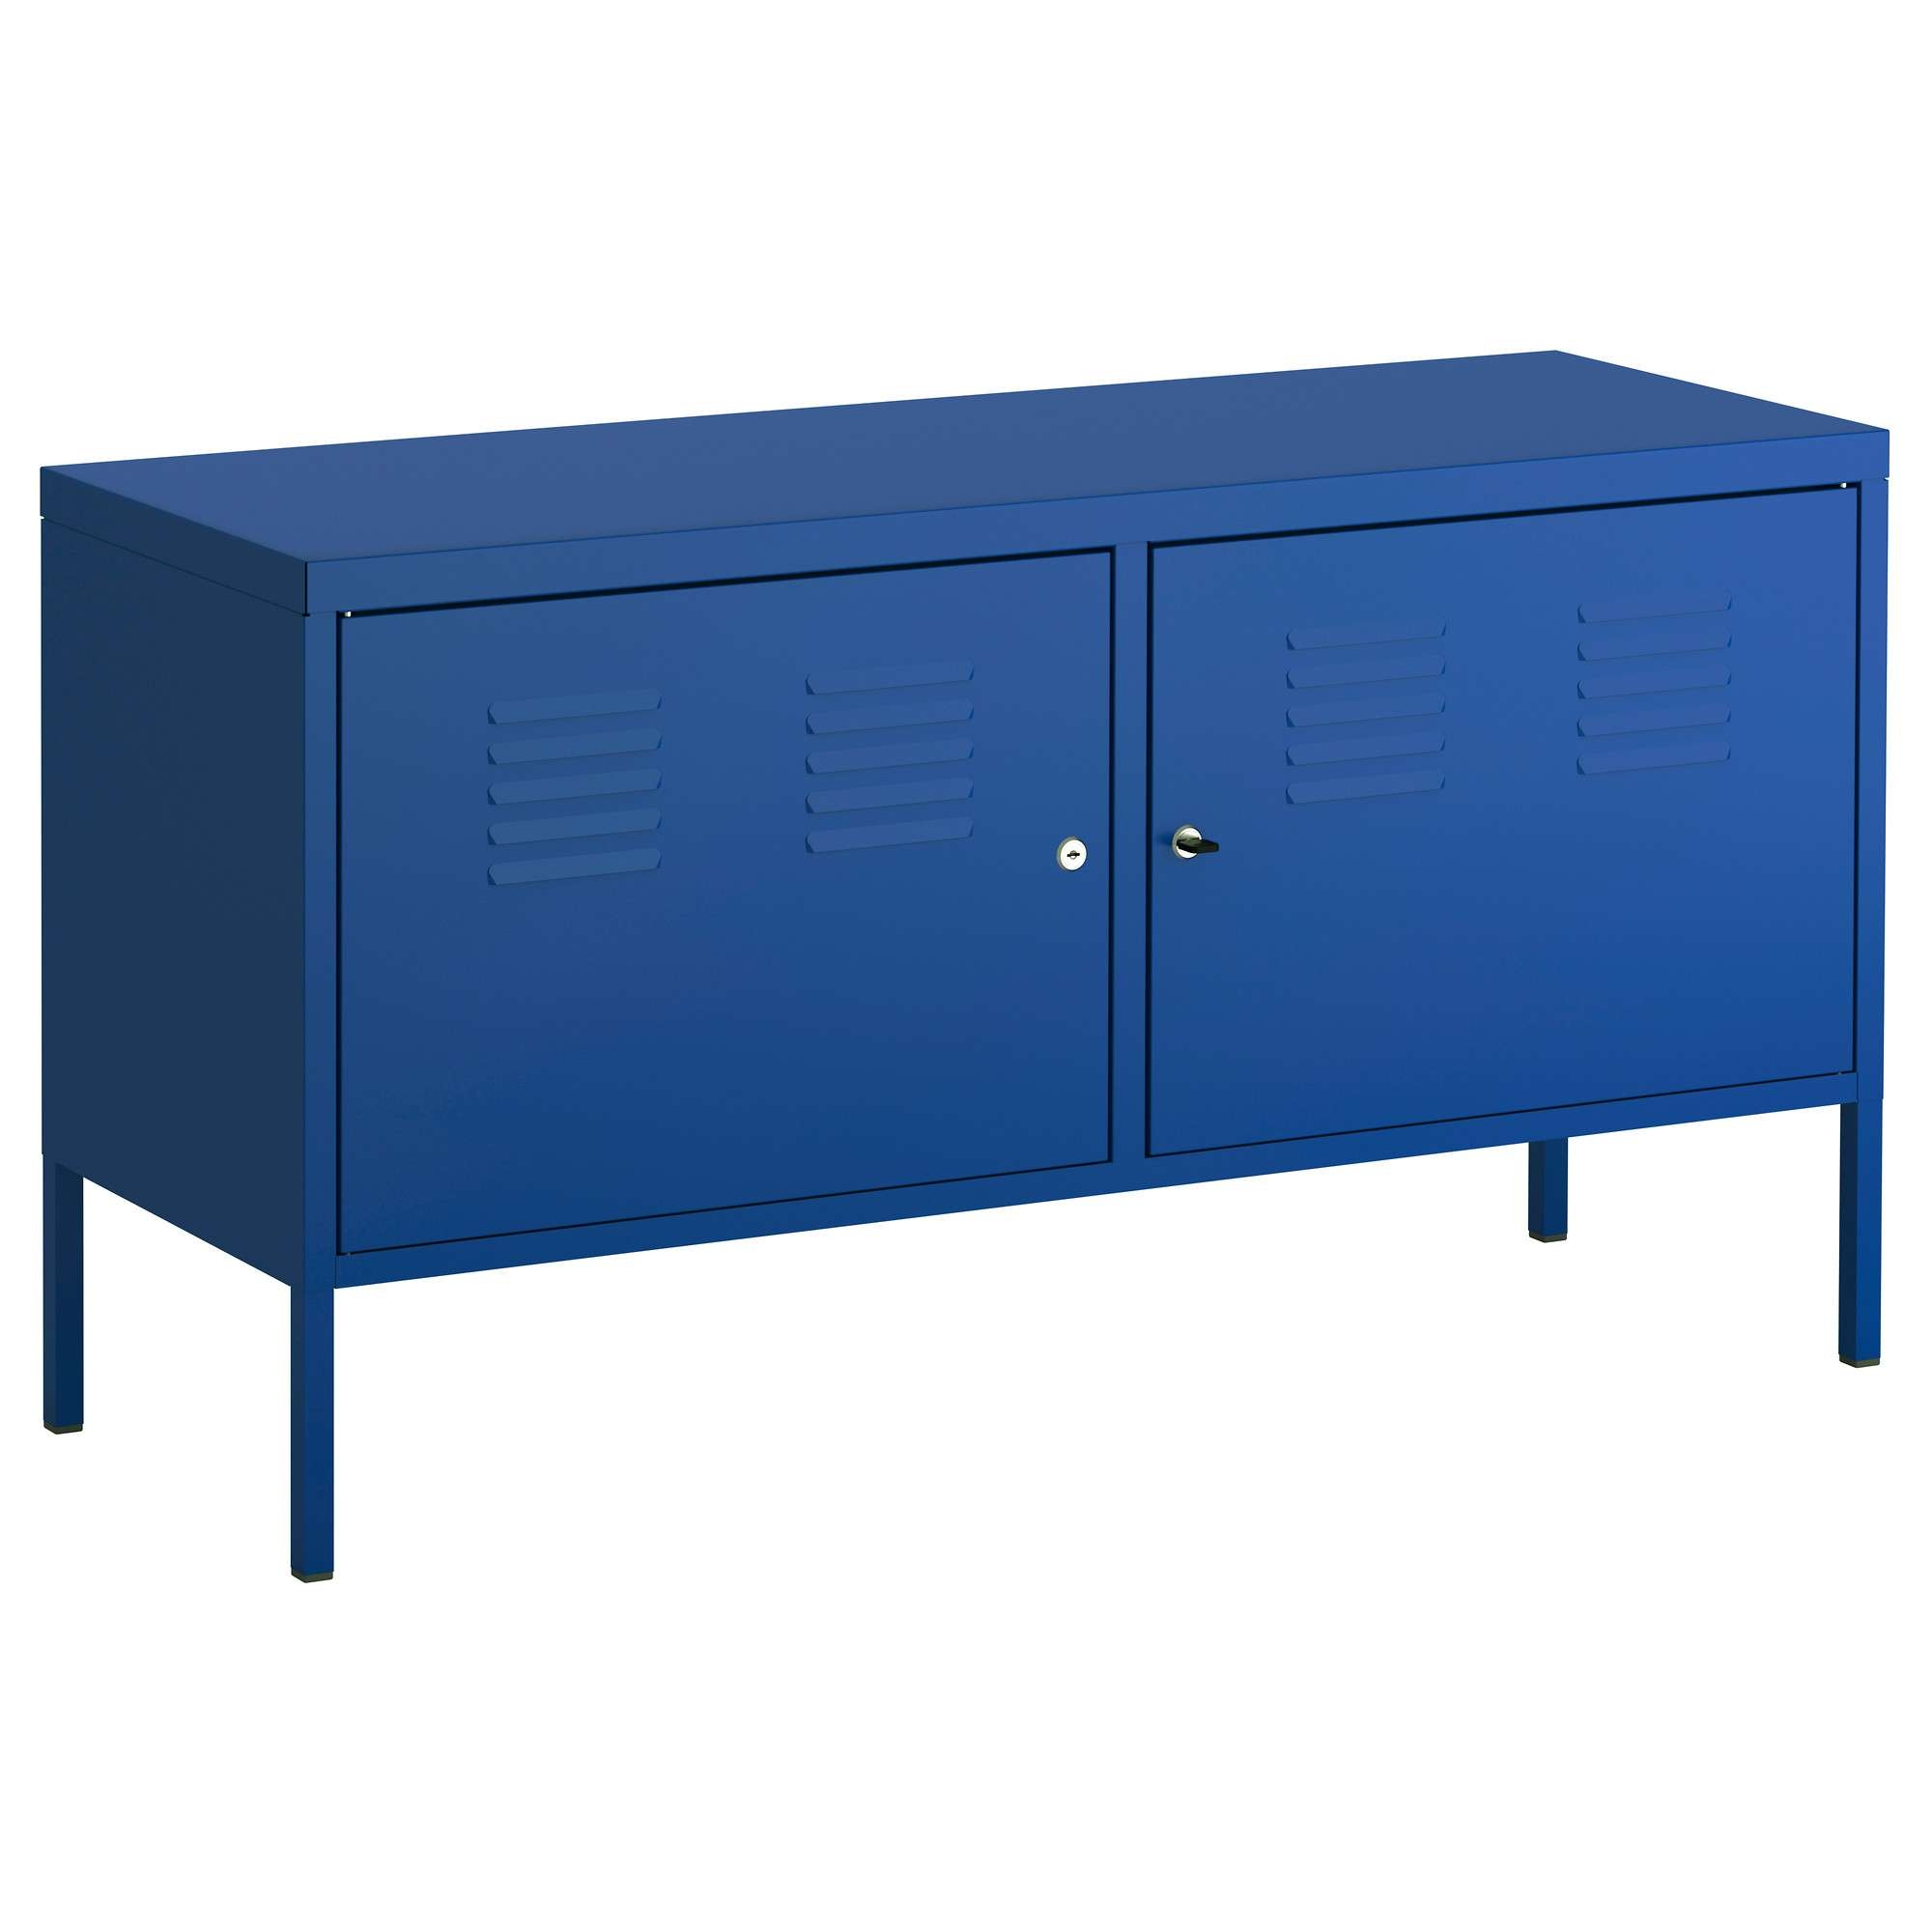 Small Tv Stands Ikea Ps Cabinet Blue Width Depth ~ Idolza Throughout Blue Tv Stands (View 11 of 15)